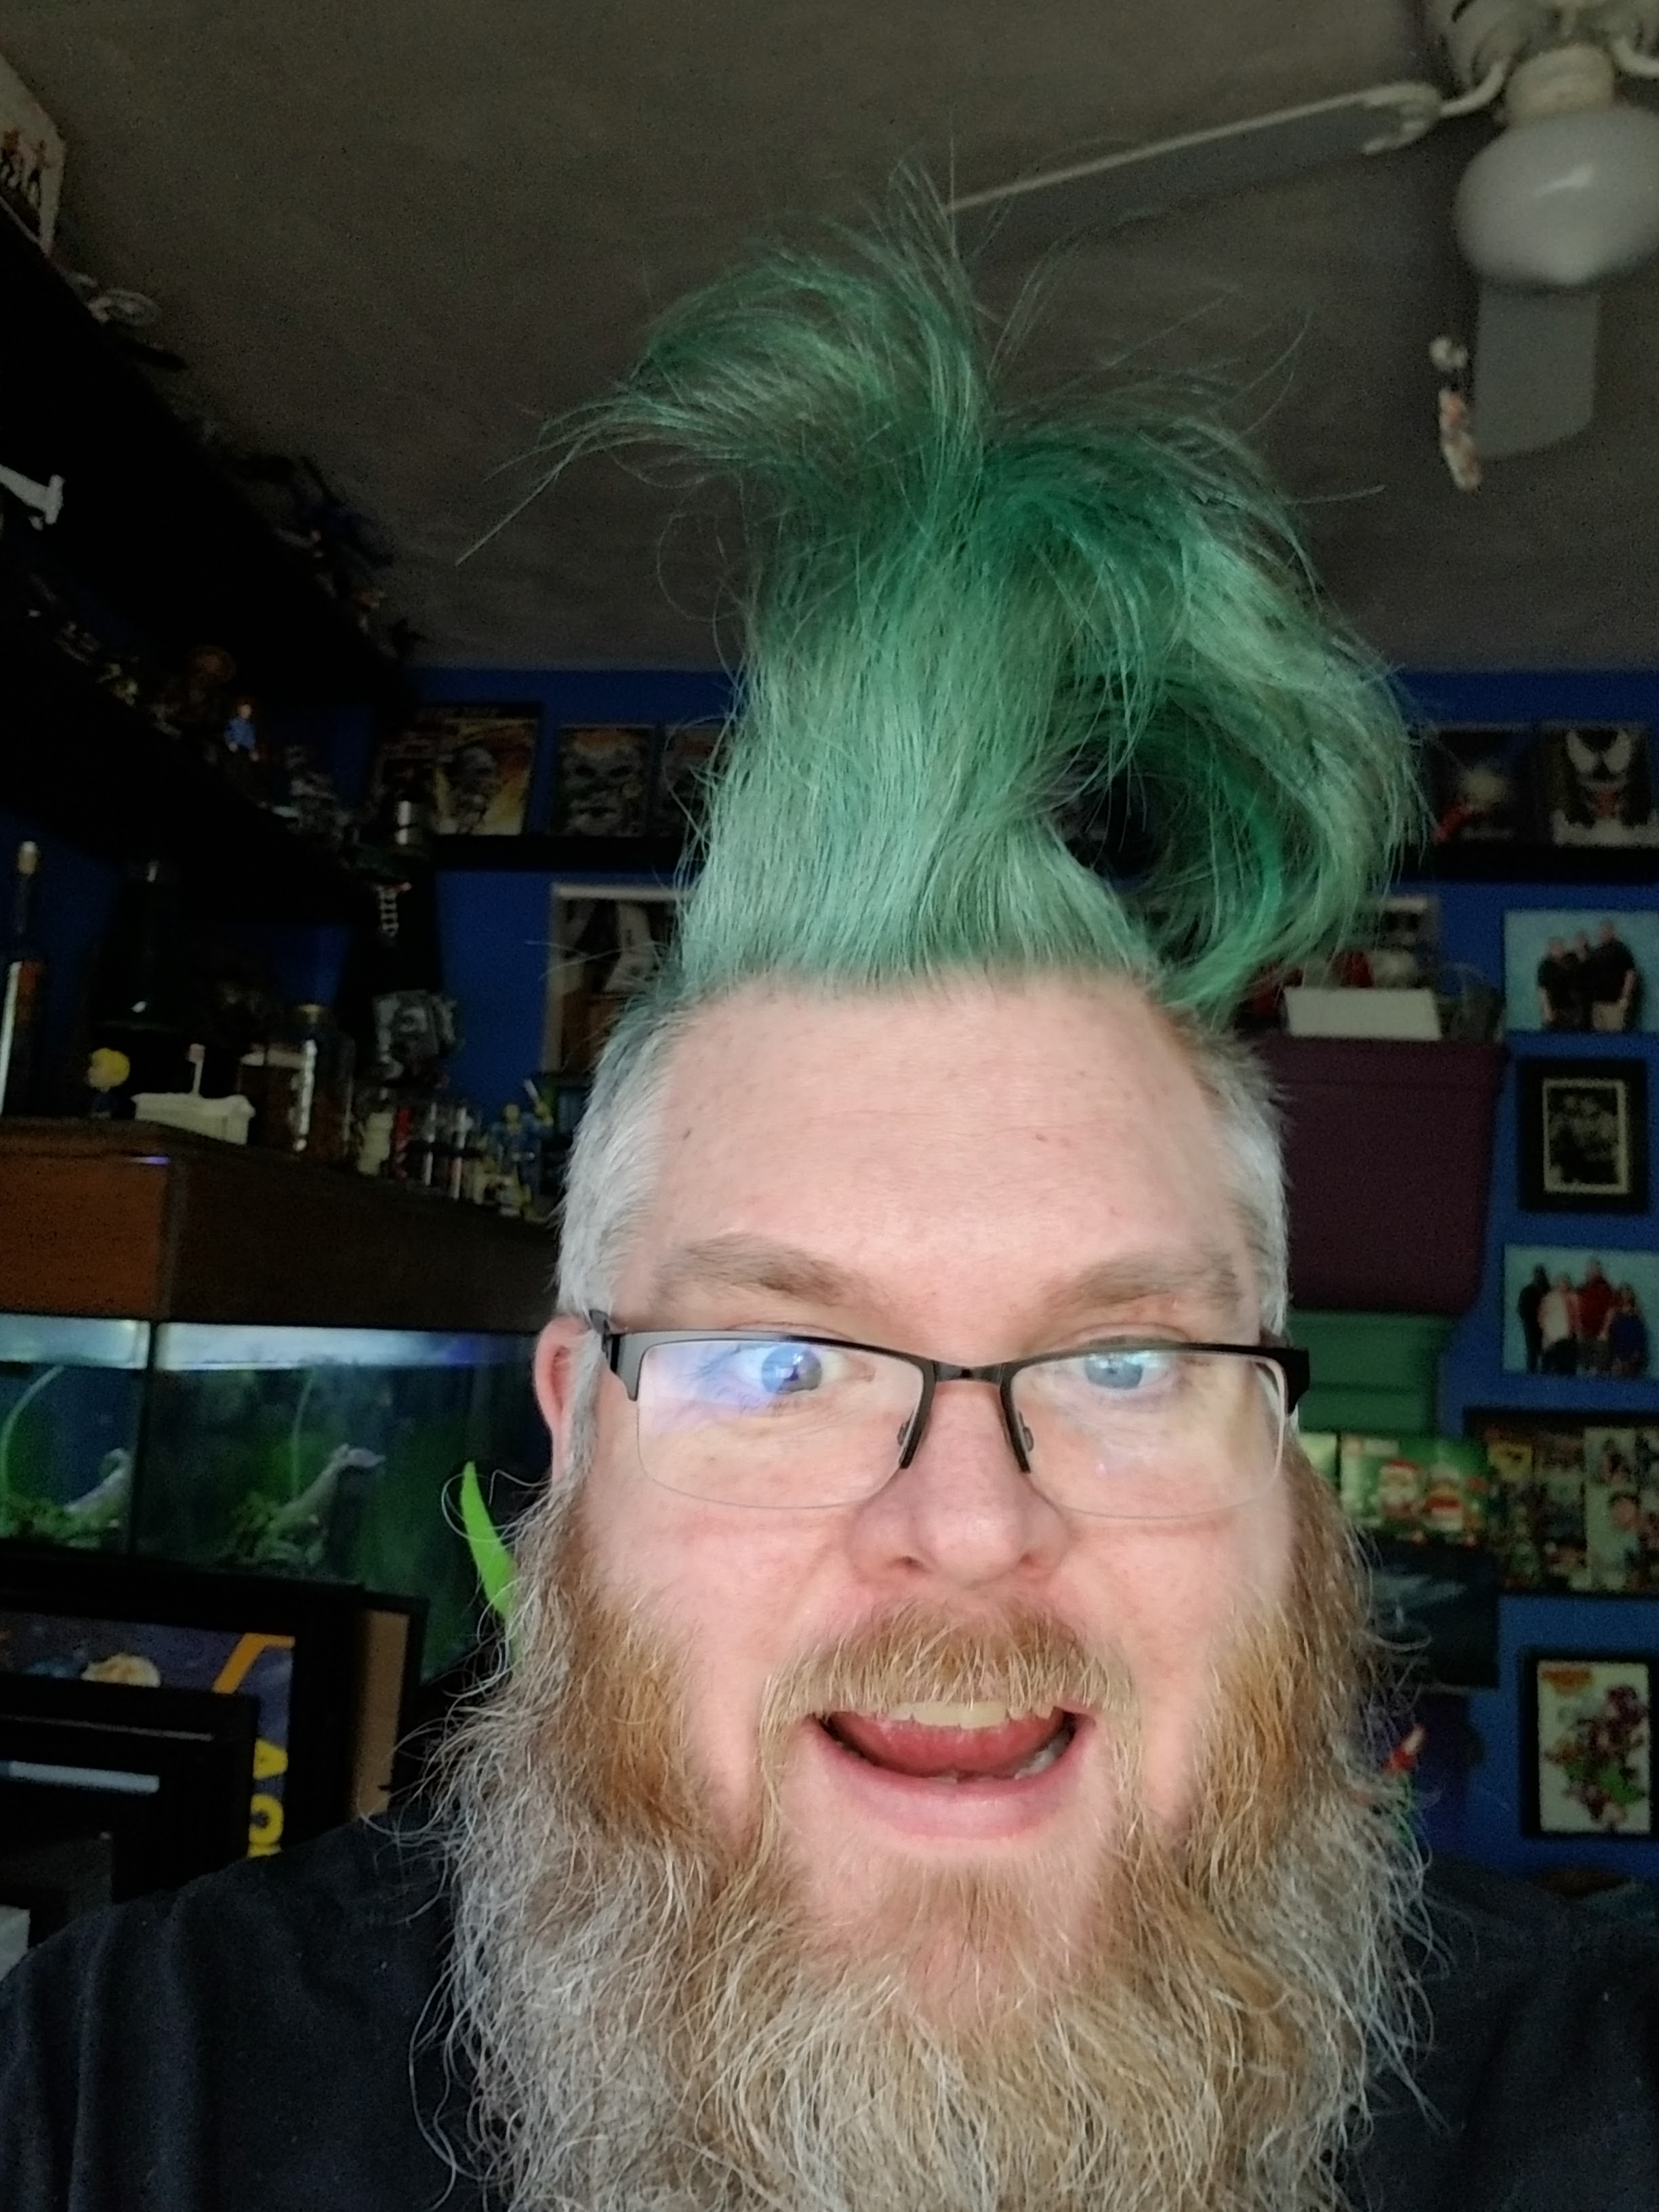 2020 09 18 my mohawk is now green